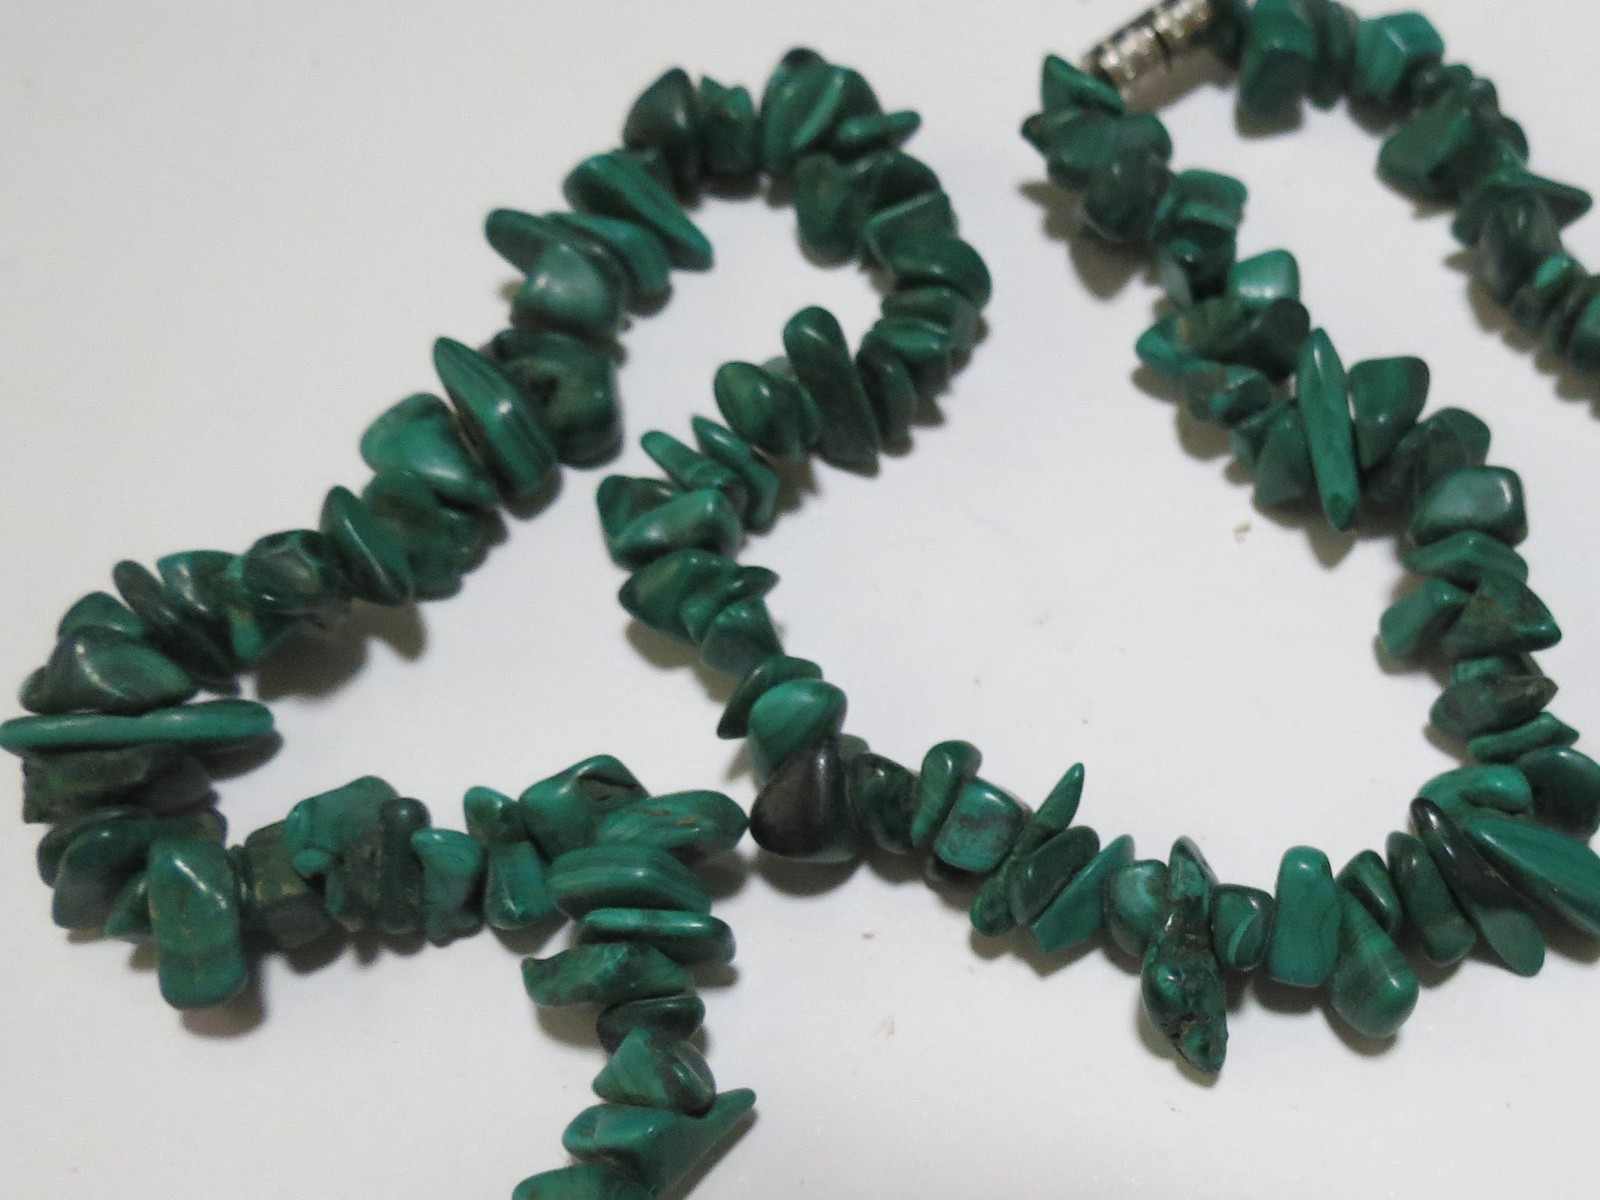 Malakite necklace necklace 20 inches very pretty image 3